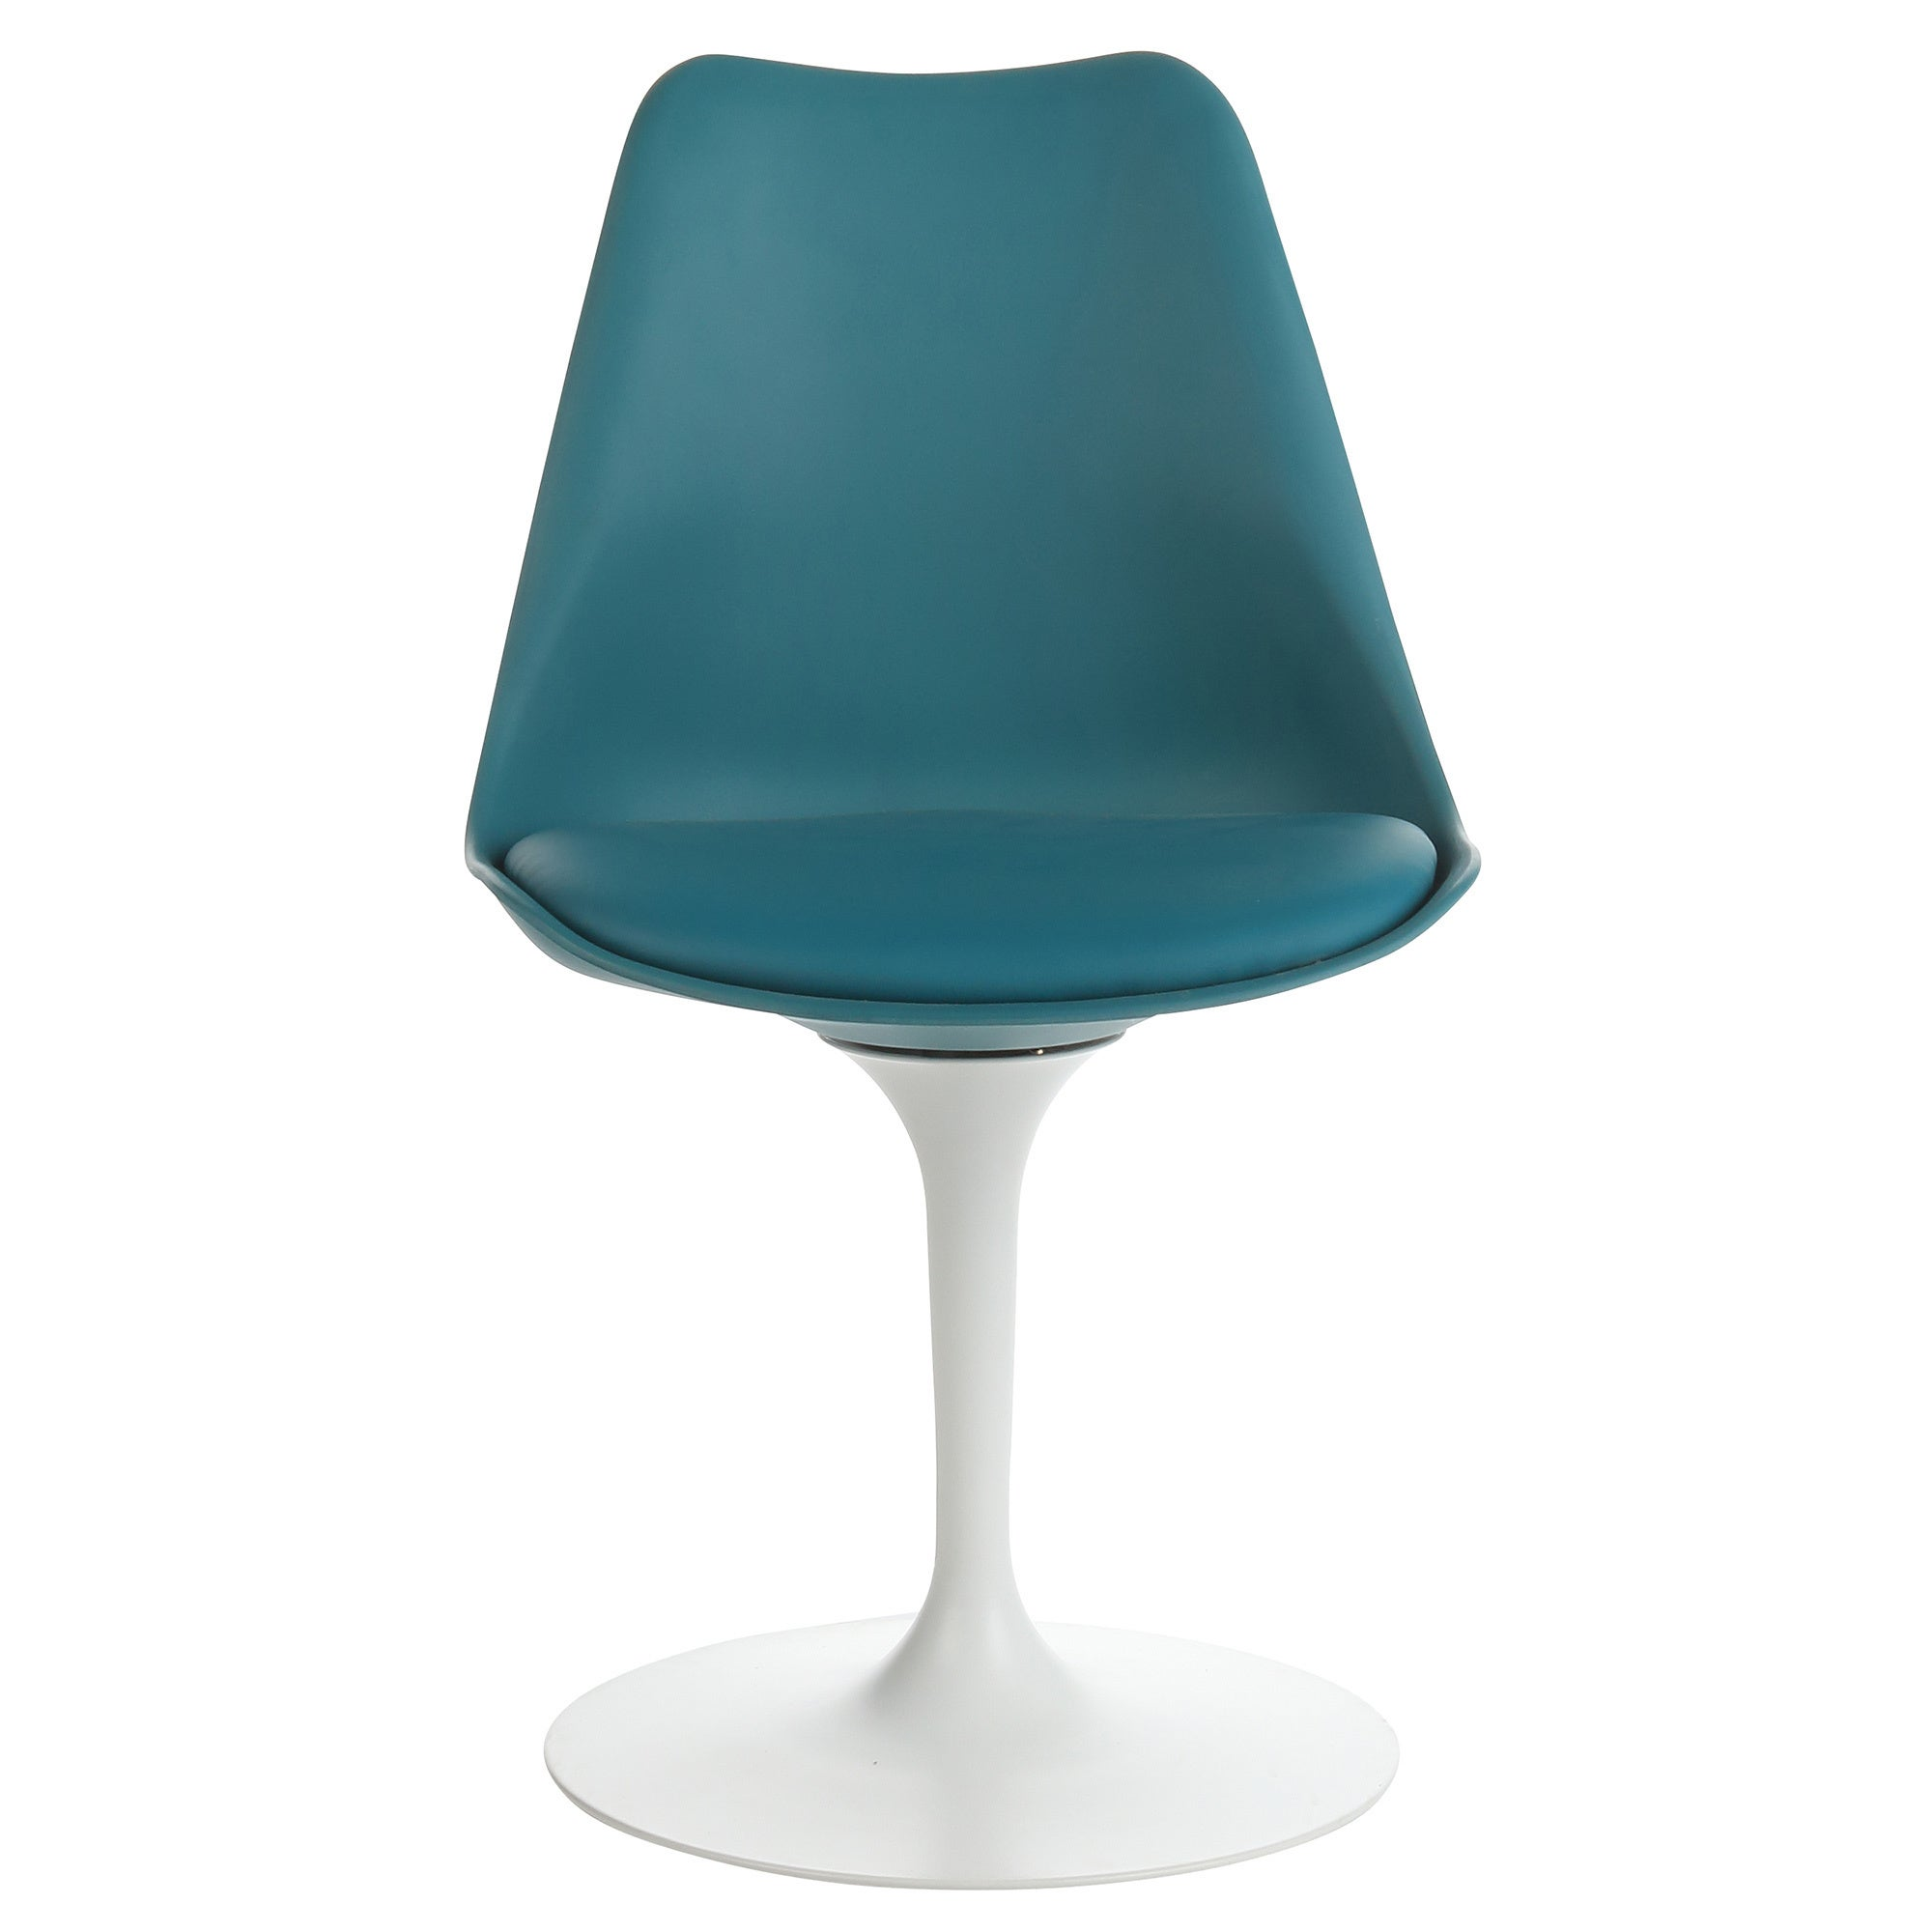 Fabulous Handmade Mid Century Modern Tulip Teal Swivel Chair Caraccident5 Cool Chair Designs And Ideas Caraccident5Info